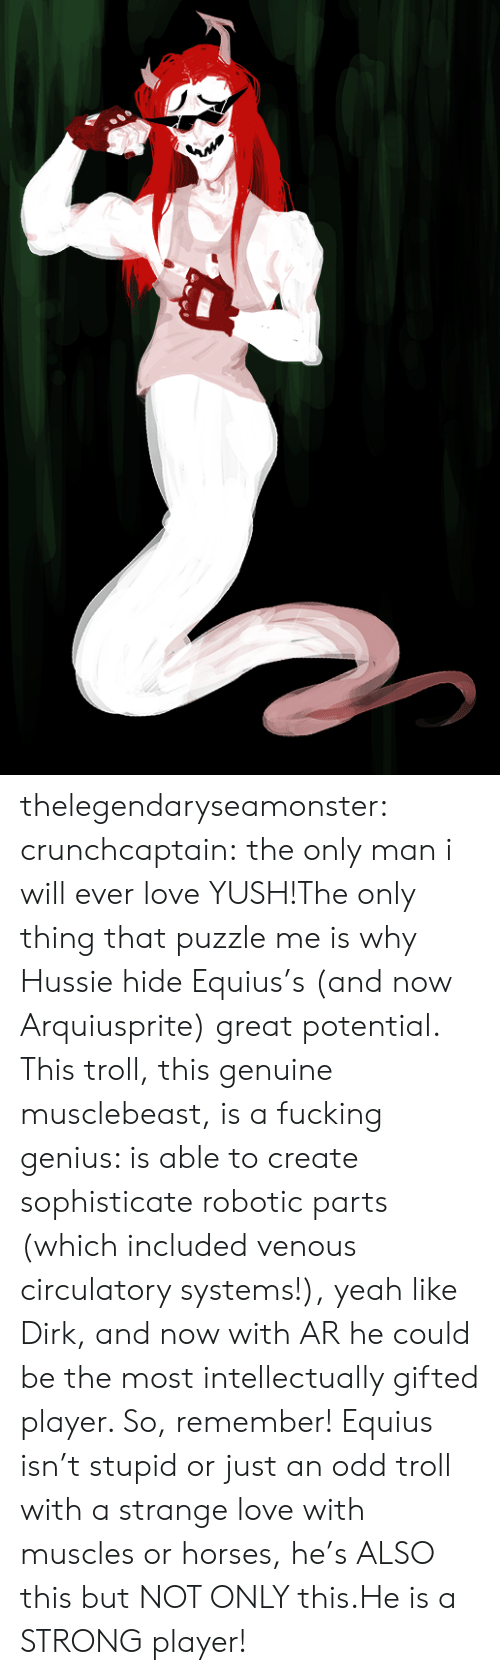 Robotic: thelegendaryseamonster: crunchcaptain:  the only man i will ever love  YUSH!The only thing that puzzle me is why Hussie hide Equius's (and now Arquiusprite) great potential. This troll, this genuine musclebeast, is a fucking genius: is able to create sophisticate robotic parts (which included venous circulatory systems!), yeah like Dirk, and now with AR he could be the most intellectually gifted player. So, remember! Equius isn't stupid or just an odd troll with a strange love with muscles or horses, he's ALSO this but NOT ONLY this.He is a STRONG player!